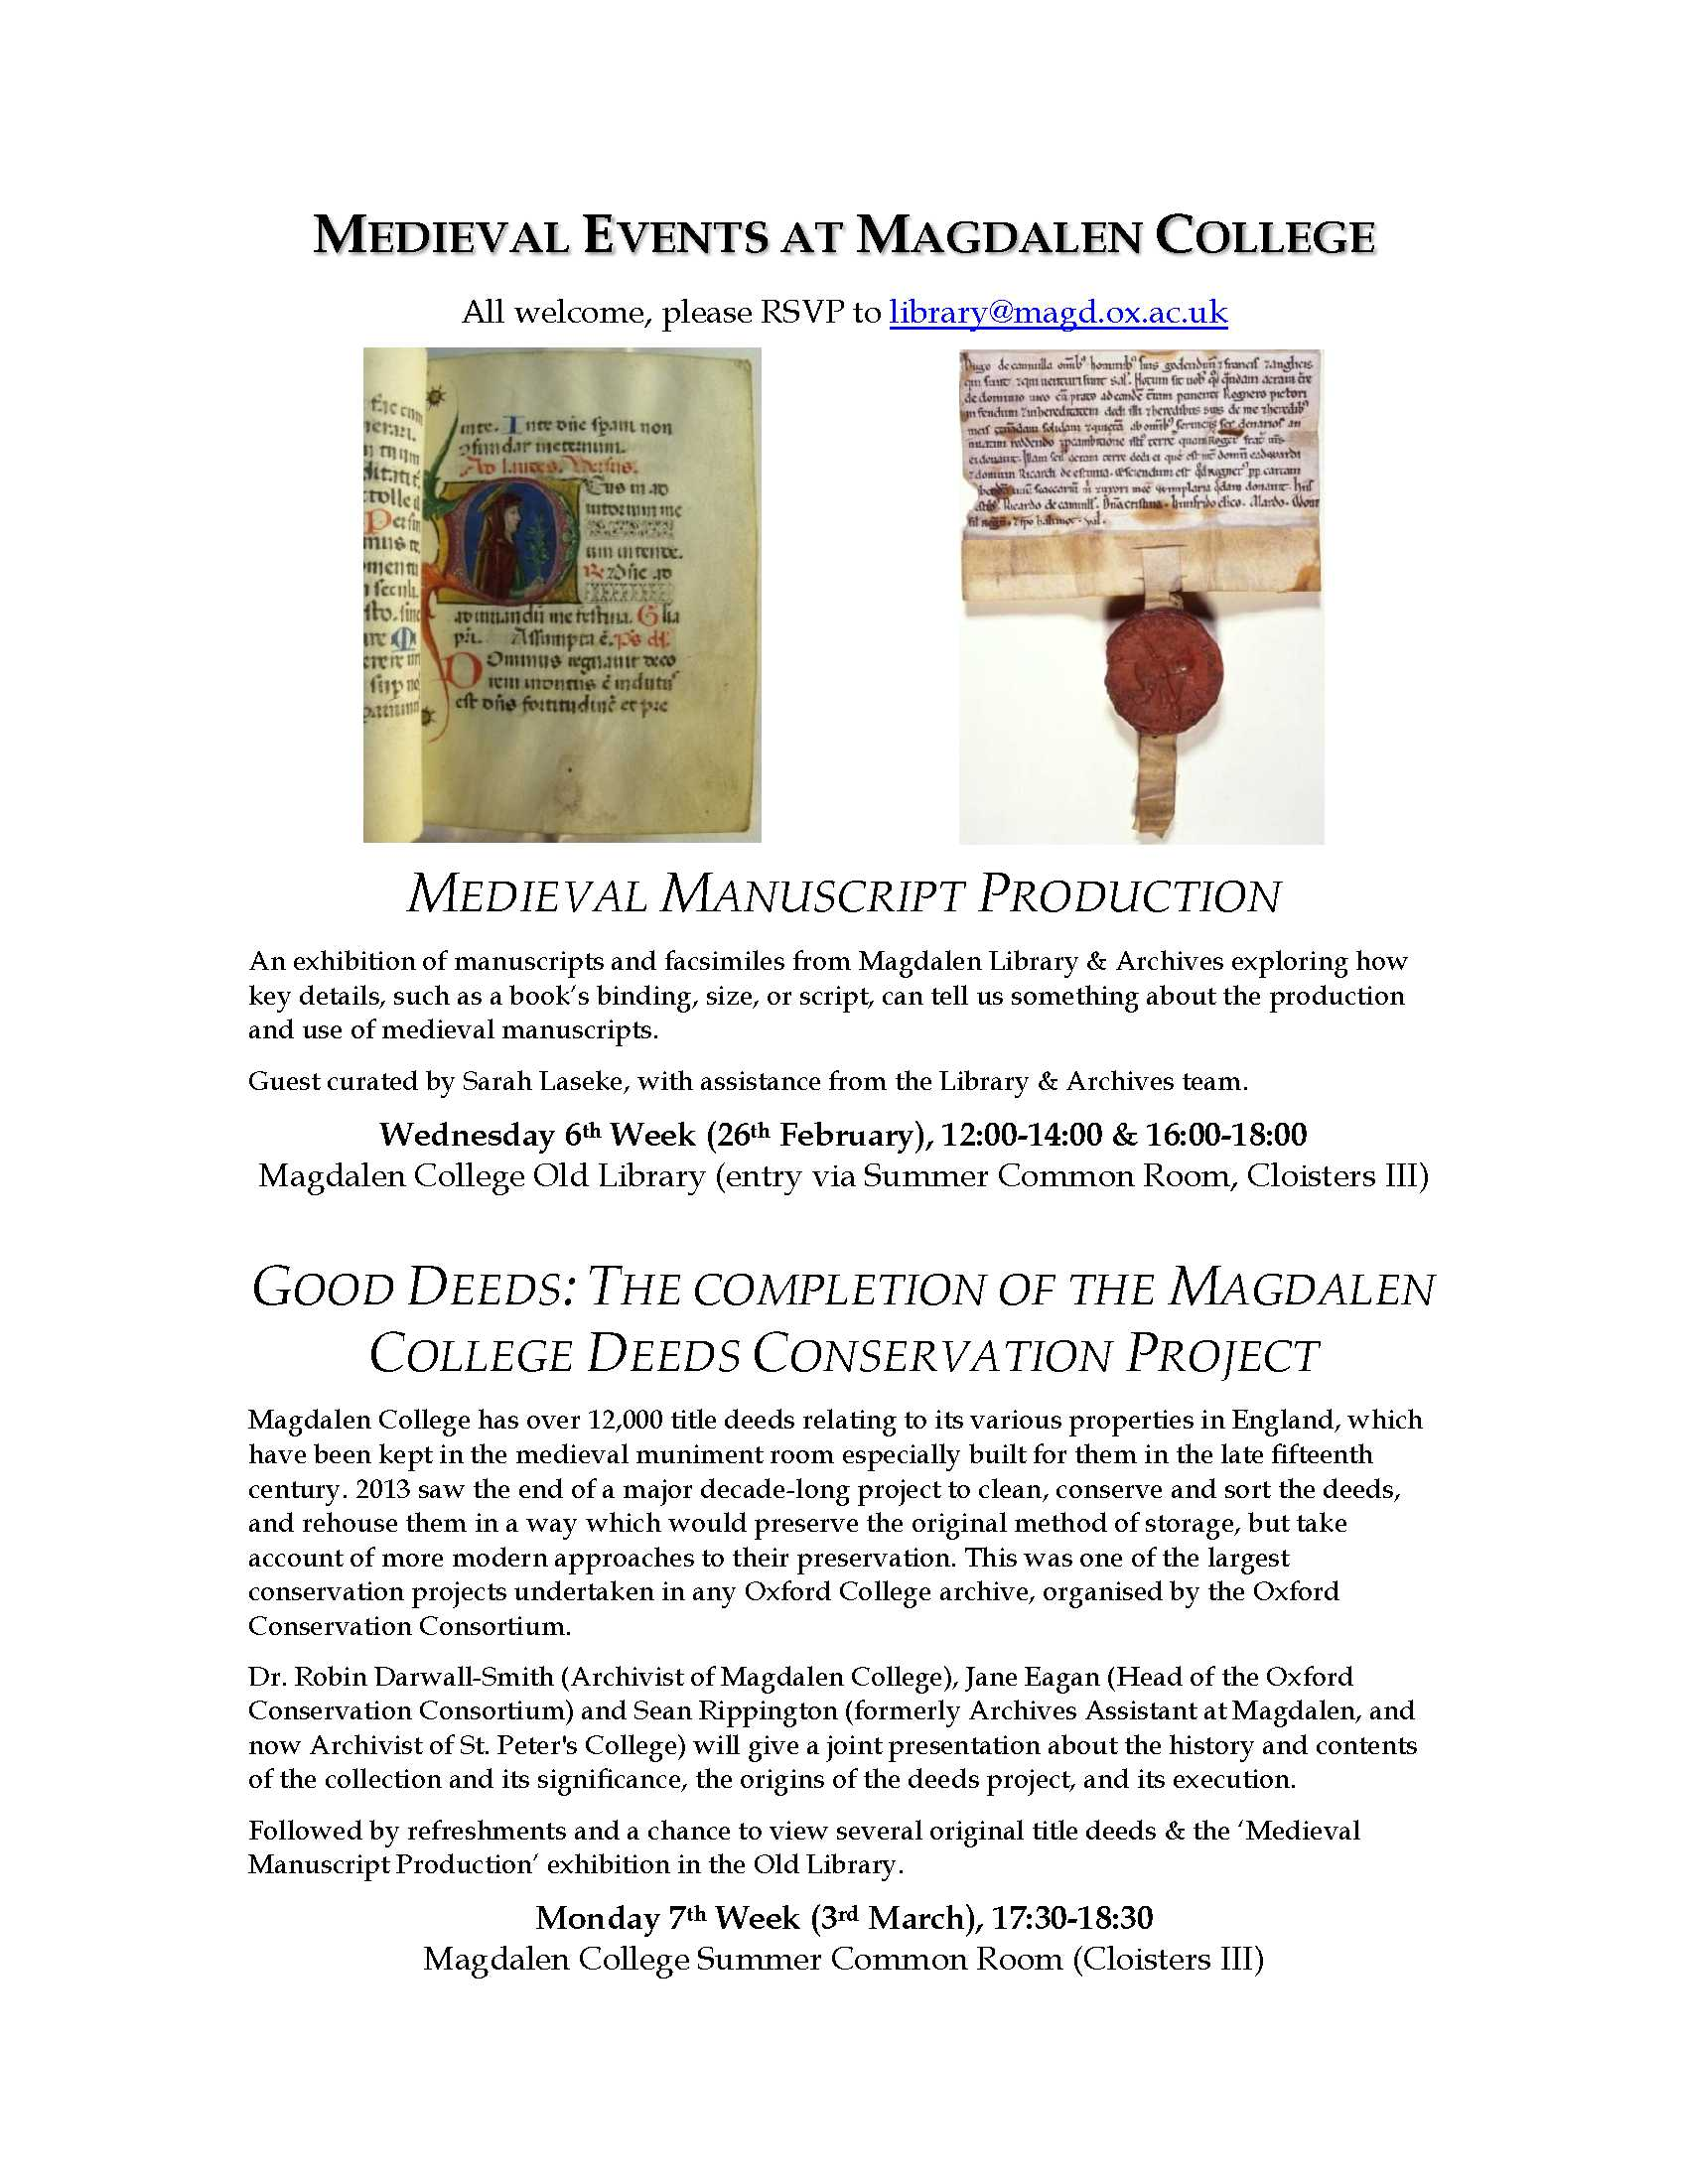 Medieval Events at Magdalen College, 26/02/14 and 03/03/14